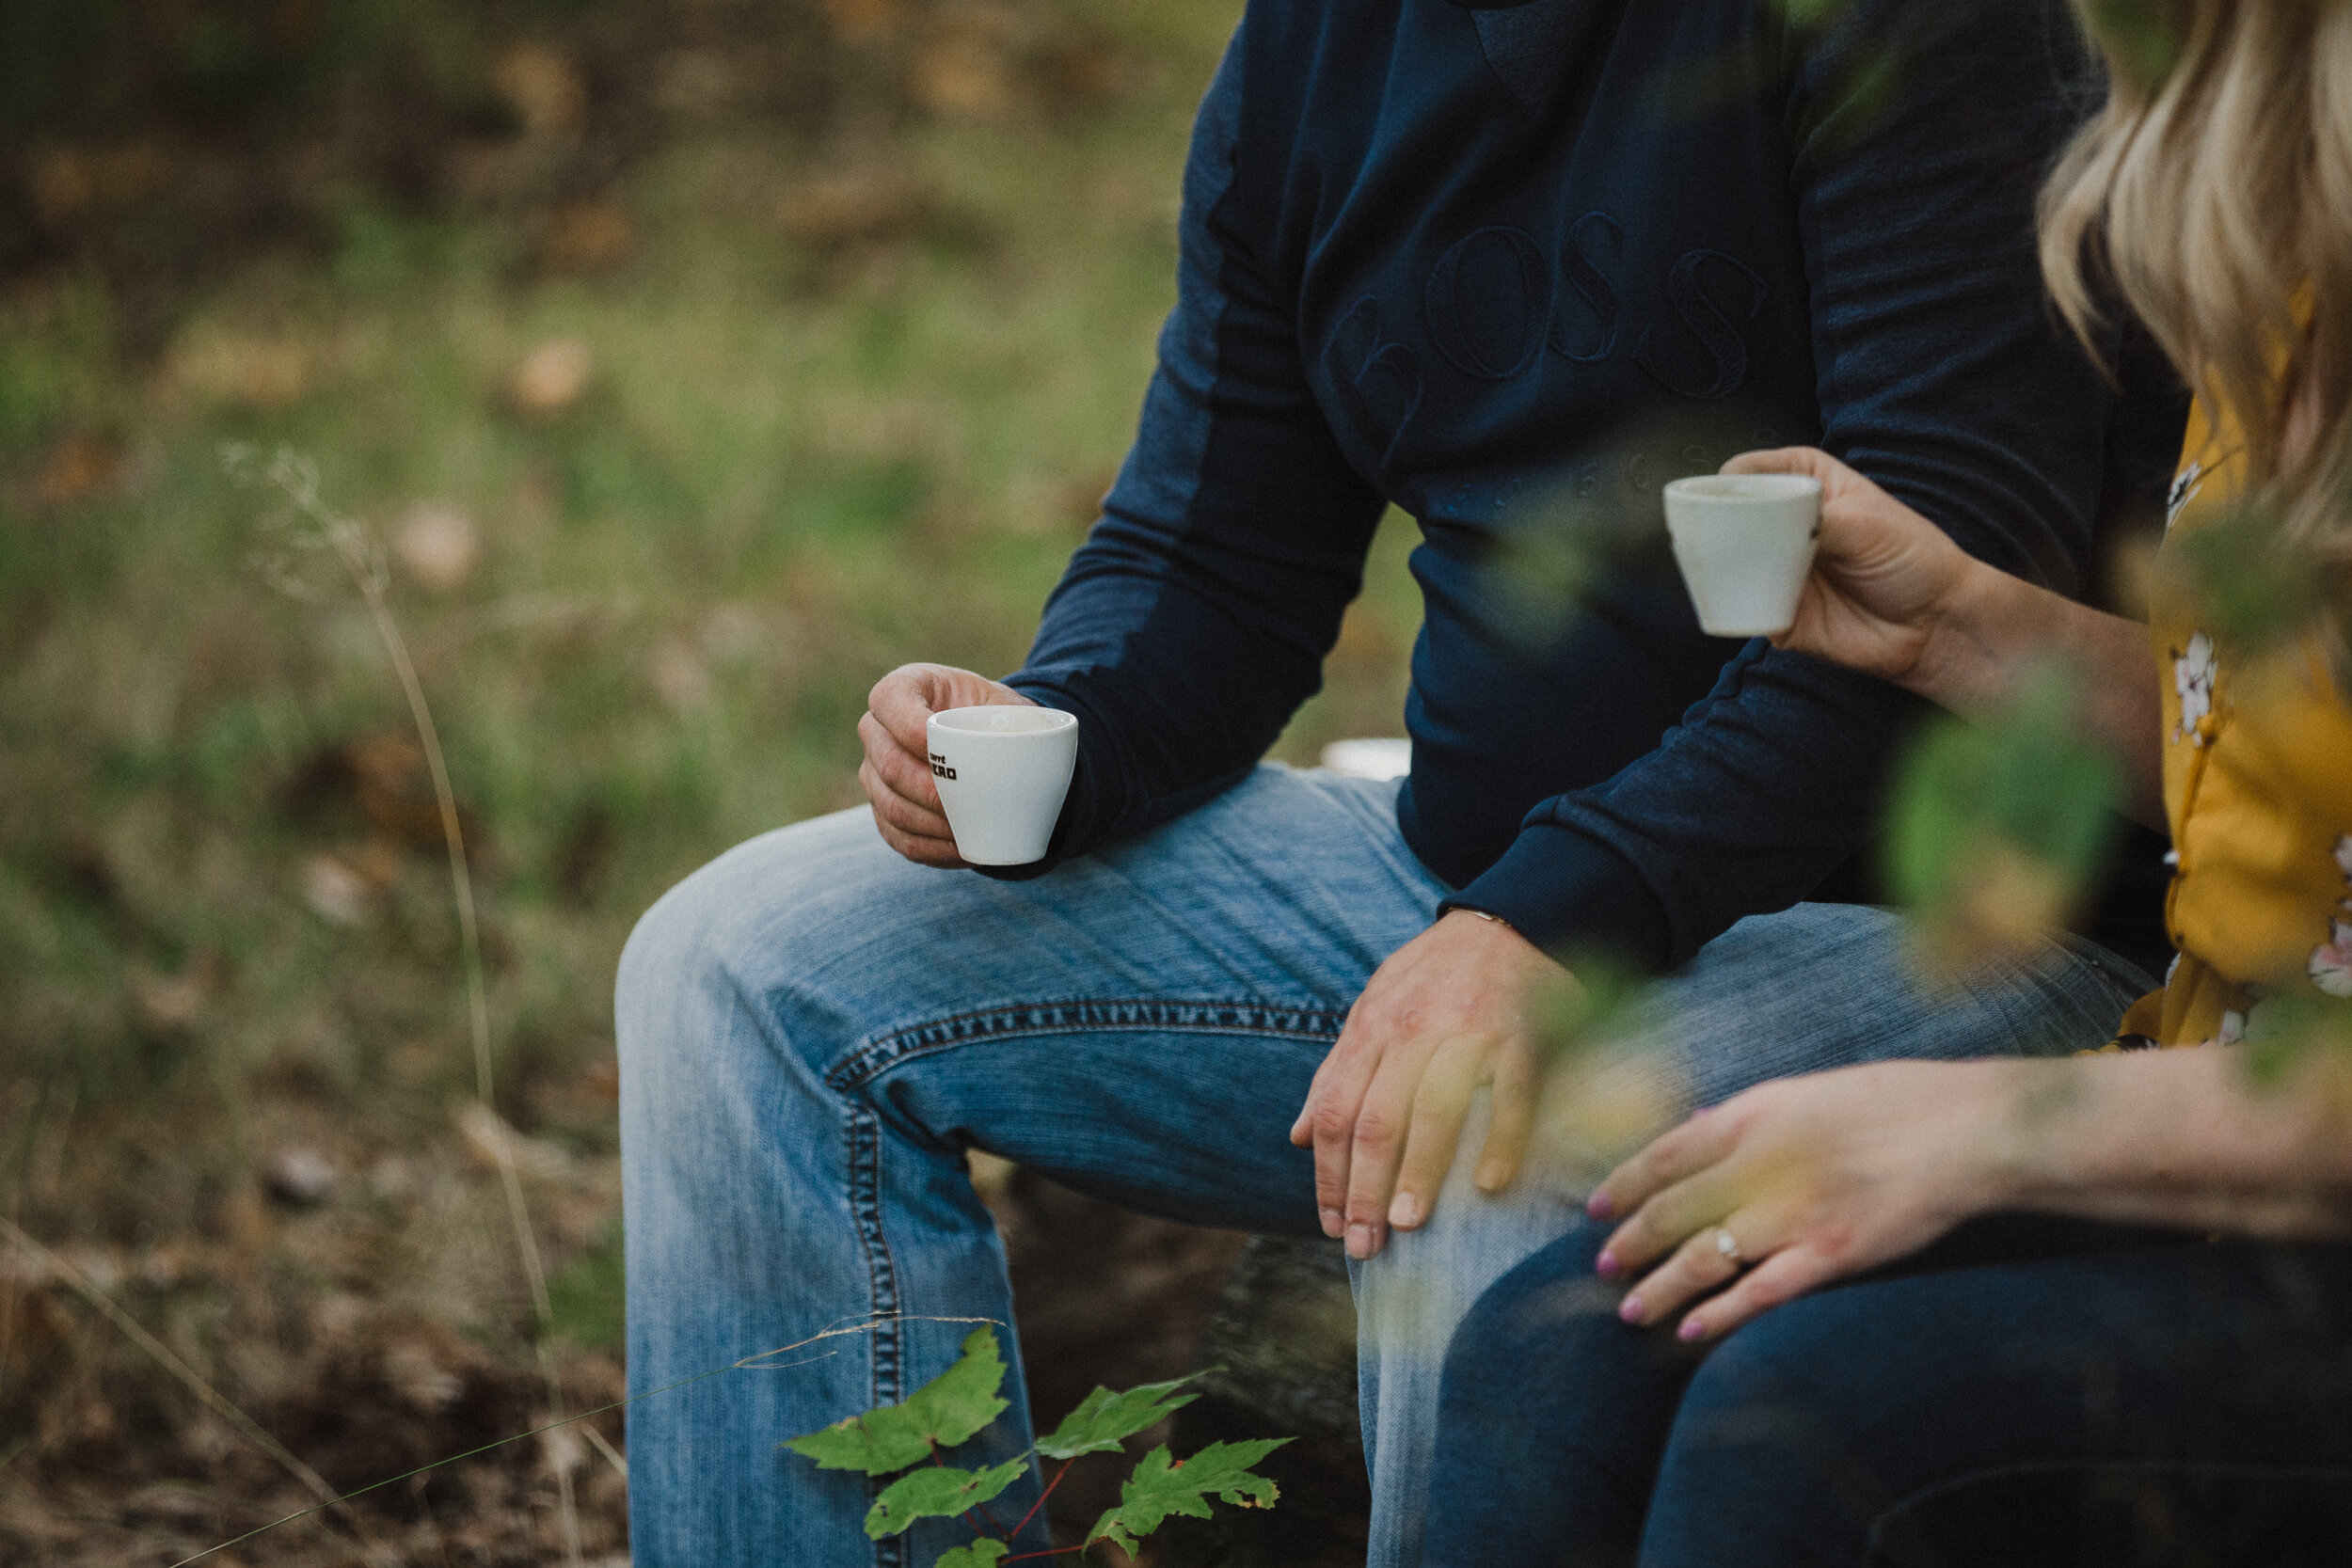 engagement-photo-coffee-expresso.jpg